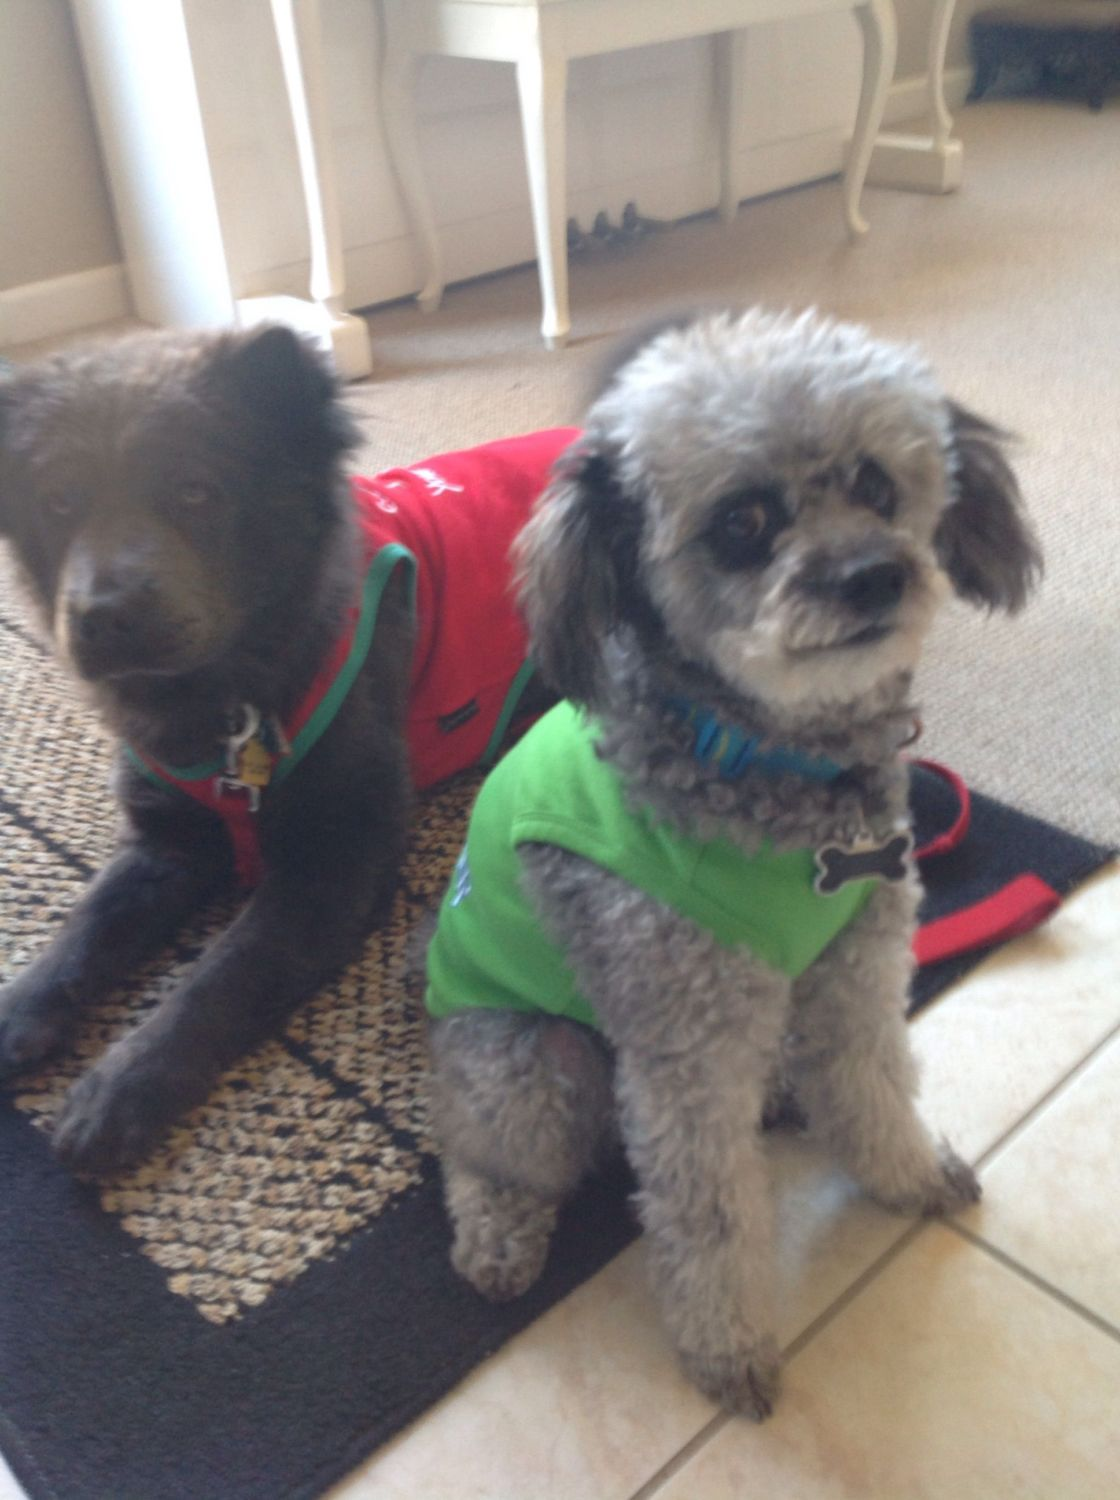 Brooke (Chow breed) is one of my foster girl that I rescued last year and we found her a wonderful adopter in San Jose.  Cooper has been through a lot of foster doggies in his 9 years and he is still learning to be gracious, LOL!